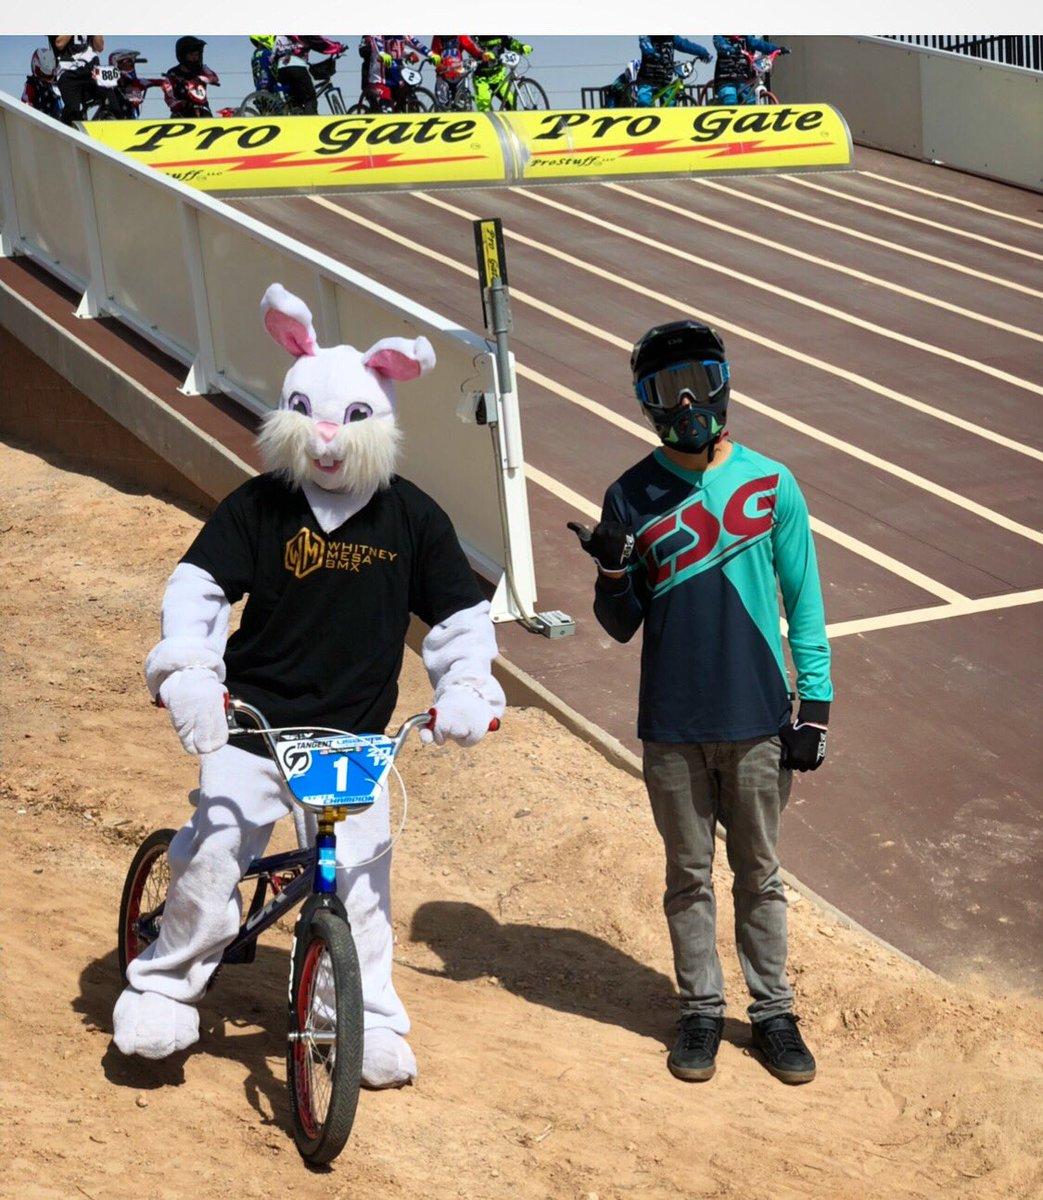 Did you guys get a chance to hang out with the #easterbunny?    #easterday #bmx #easteroutfit #bmxtrack #easteregghunt #bmxracing @usabmx  @whitneymesabmxtrack @pro_gate #progate #hendersonbmx #ridaz #usabmx #bicycles #easterride #bmxforever #bikes #easteregg<br>http://pic.twitter.com/iC4rO88lhC